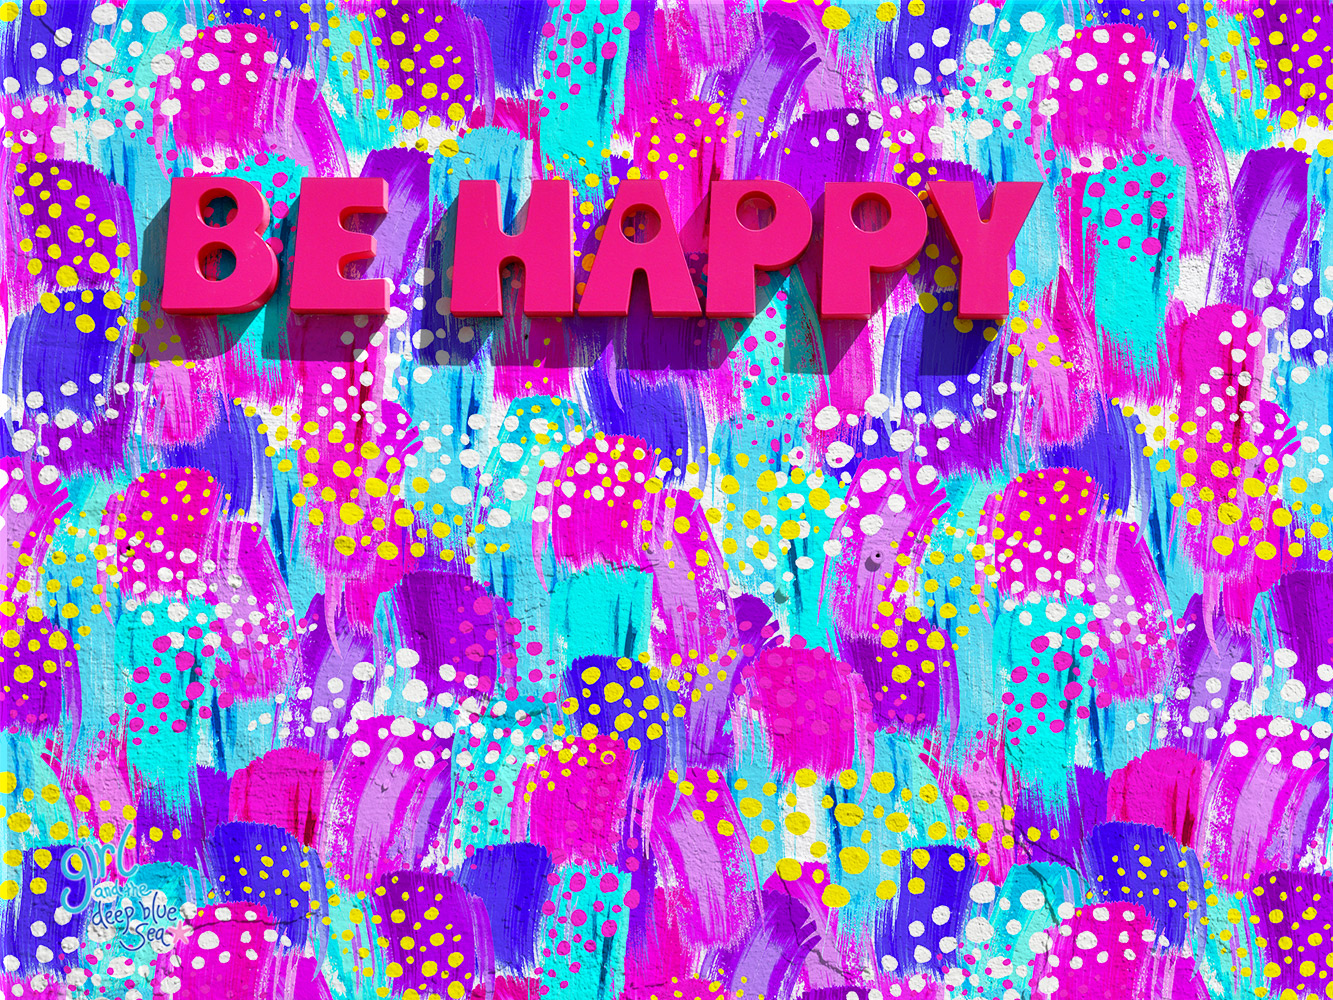 fun seamless surface pattern design with 'be happy' on wall